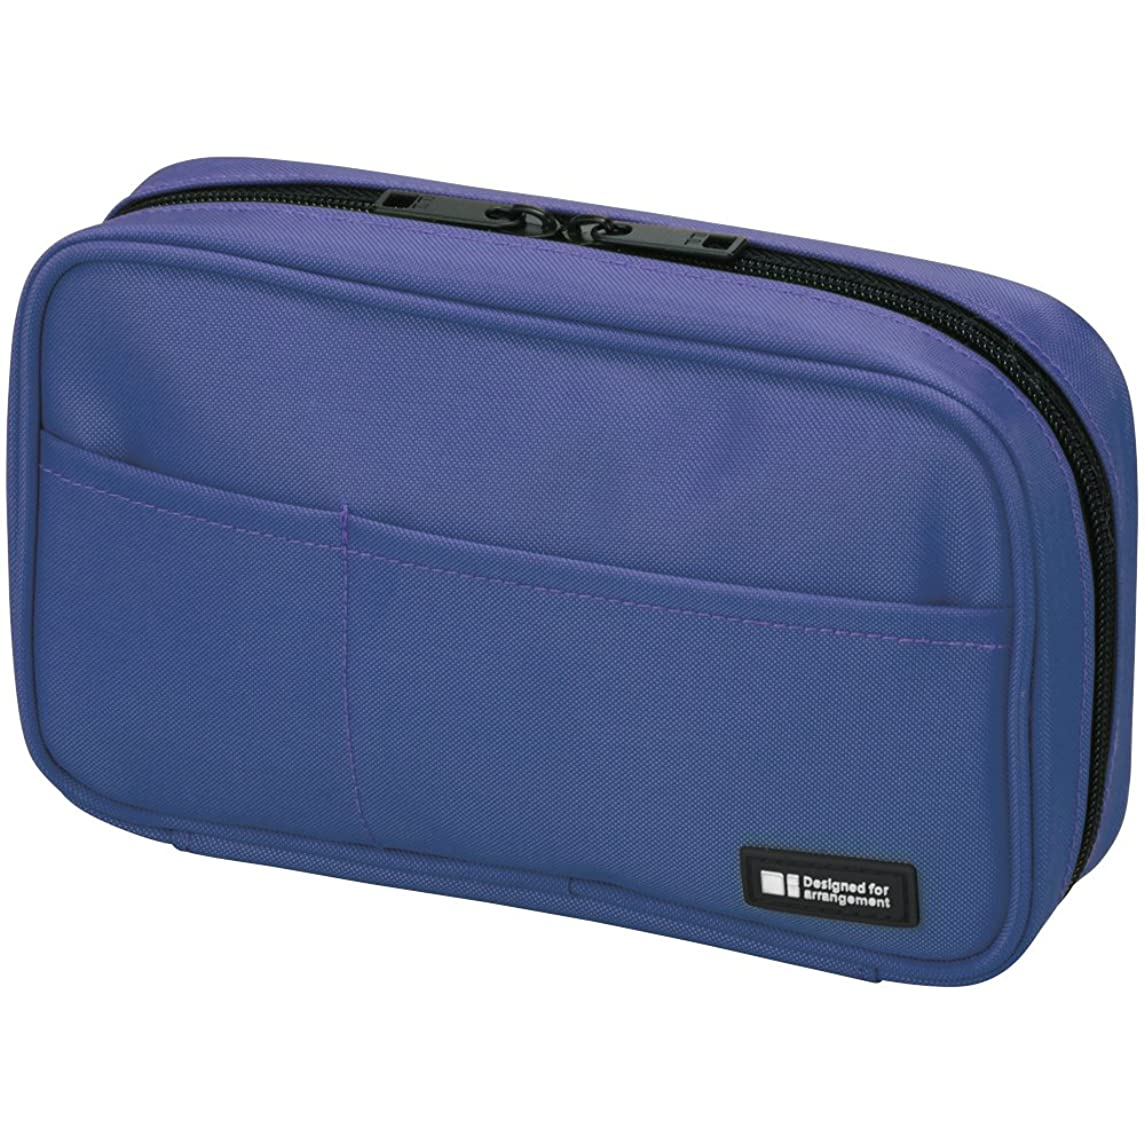 LIHIT LAB Pen Case, 7.9 x 2 x 4.7 inches, Blue (A-7551-108)